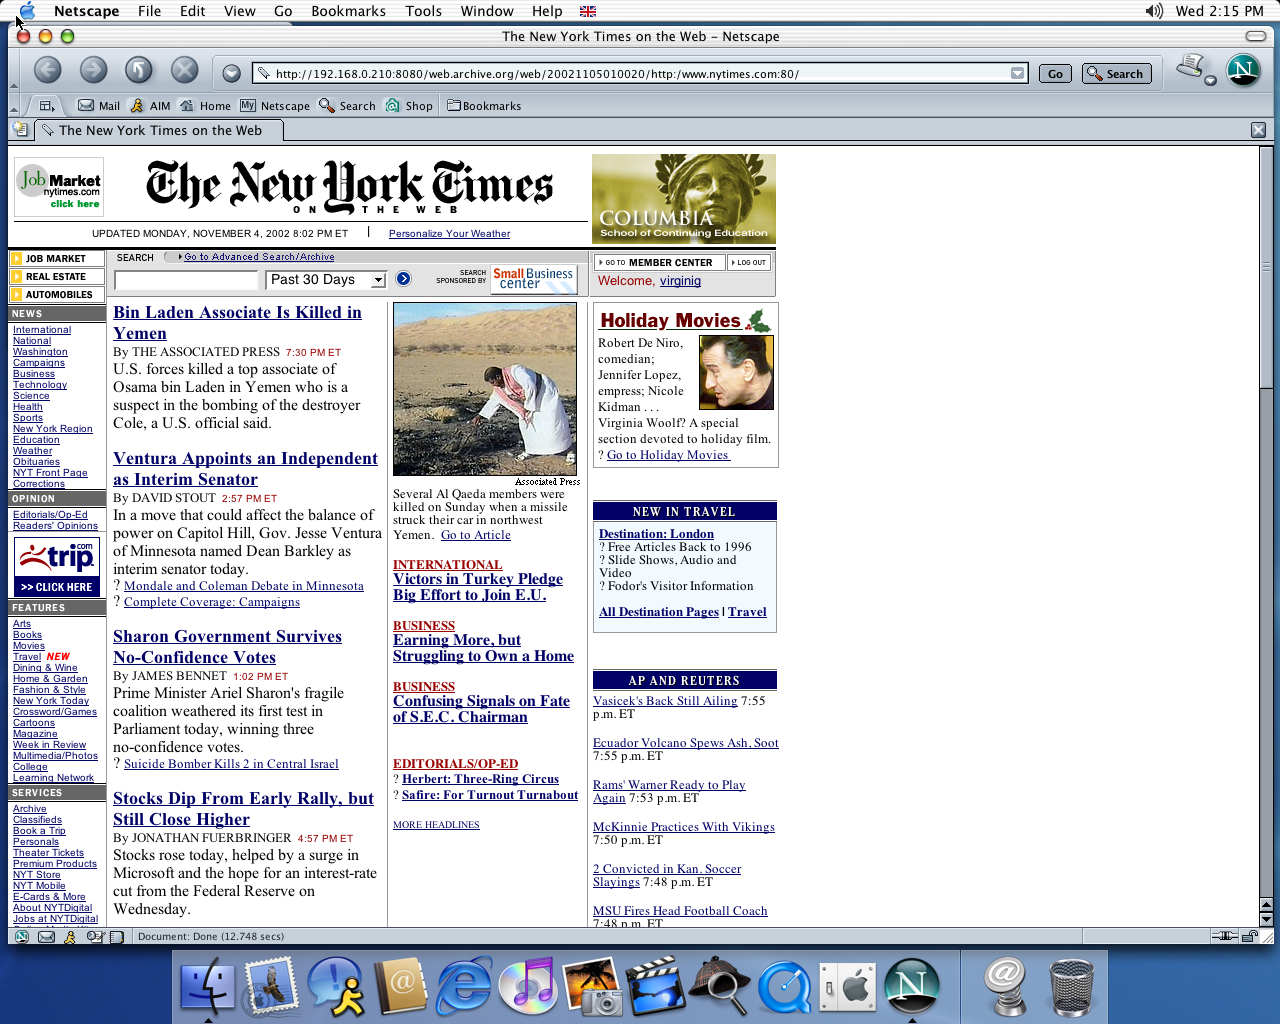 OS X 10.2 PPC with Netscape 7.0 displaying a page from New York Times archived at November 05, 2002 at 01:00:20